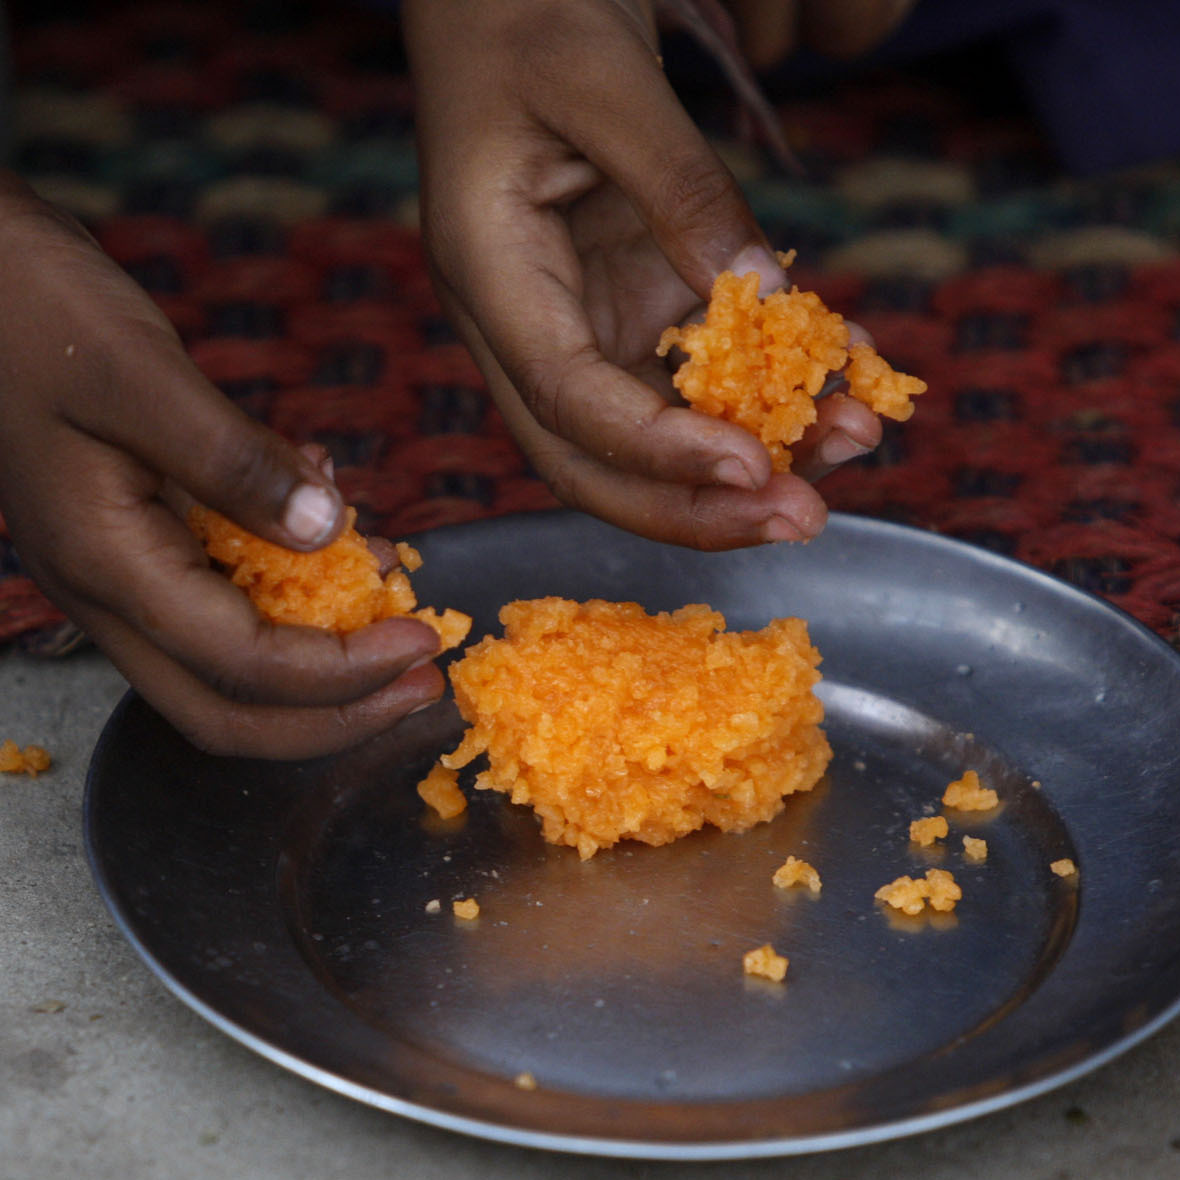 Sweetened rice is a popular dessertand snack in India. This dish, traditionally made with a pinch of saffron and cardamom powder, was served at a school on the outskirts of Jammu in northern India.